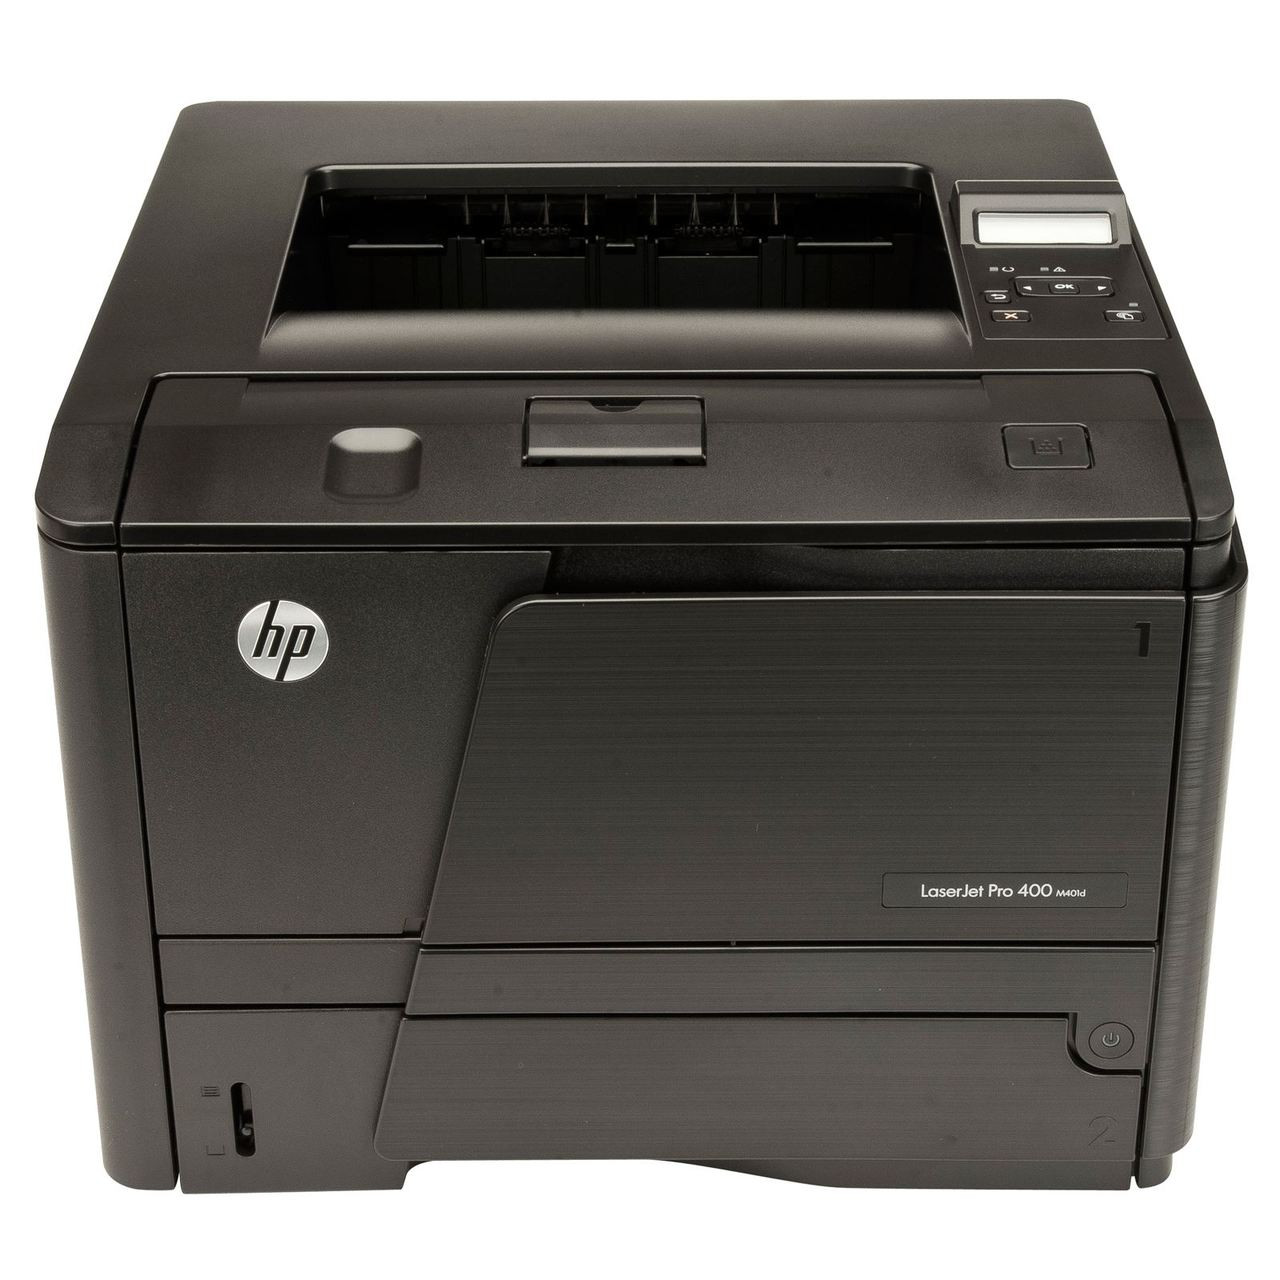 HP LaserJet Pro 400 M401N laser printer, 35 ppm